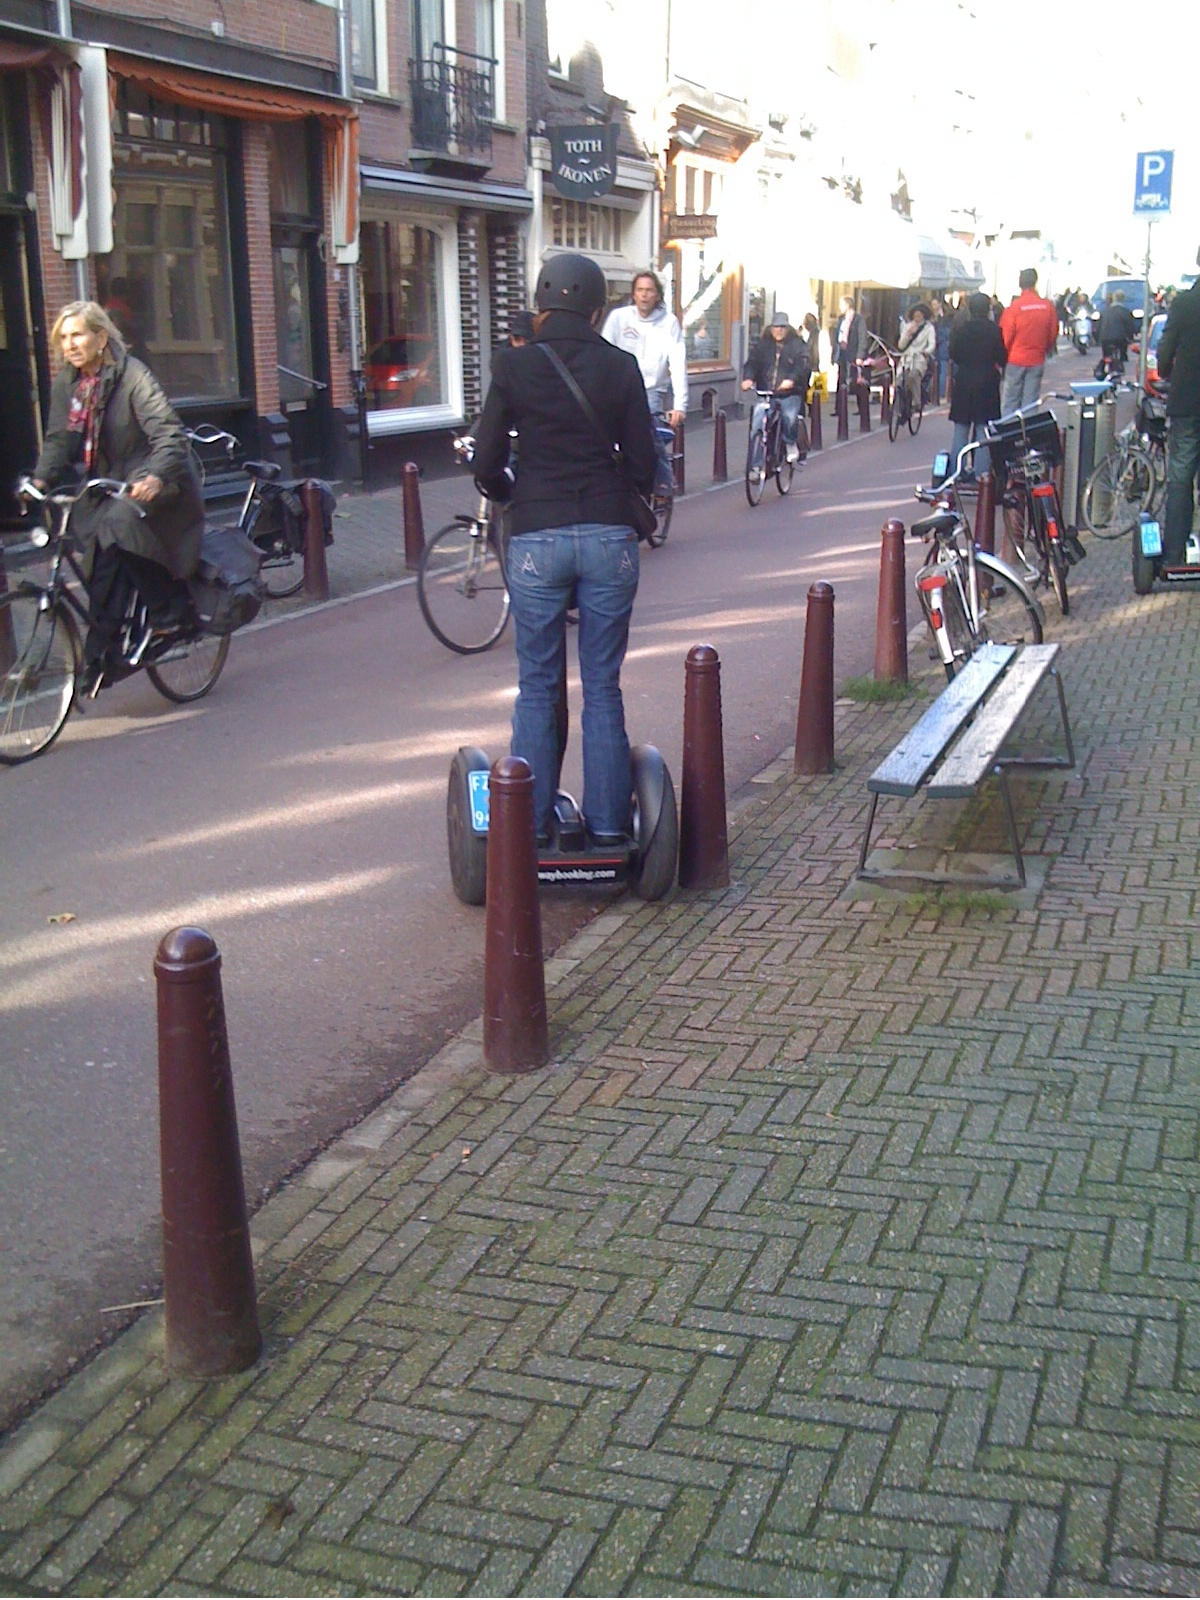 At Last! A Segway That I'd Want!